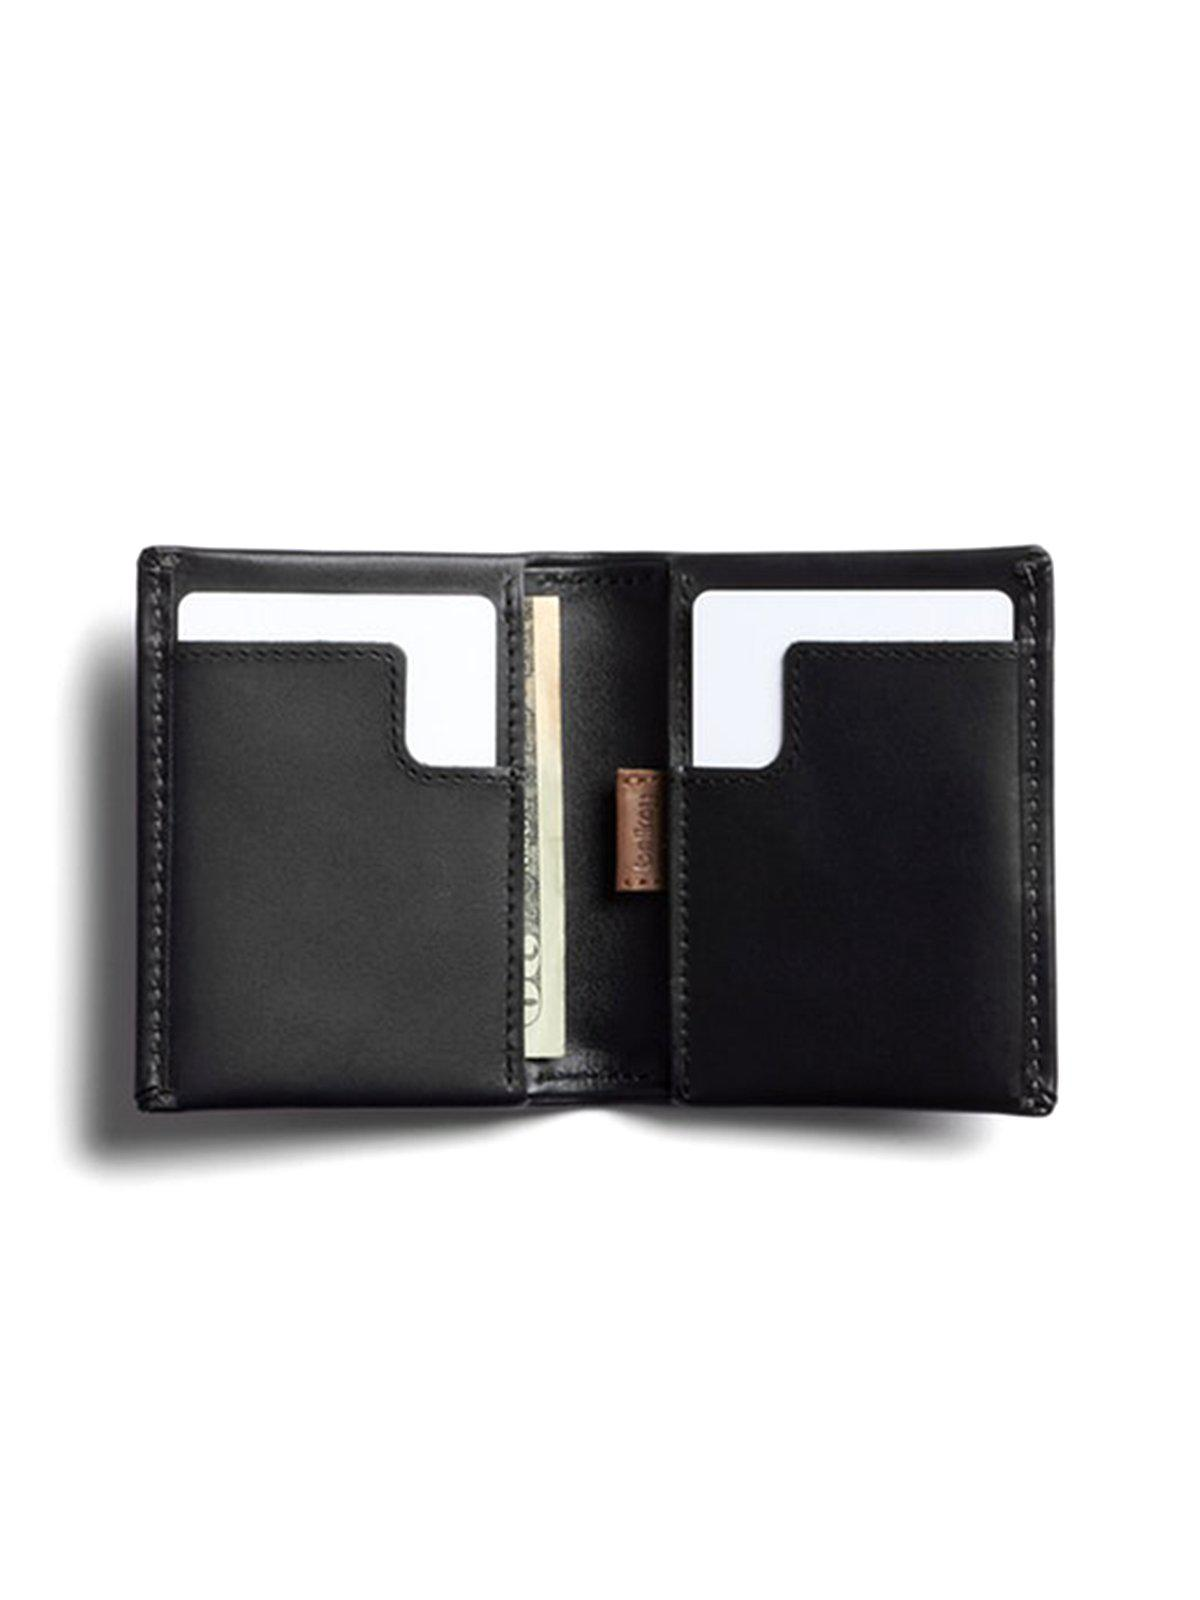 Bellroy Slim Sleeve Wallet Black - MORE by Morello Indonesia